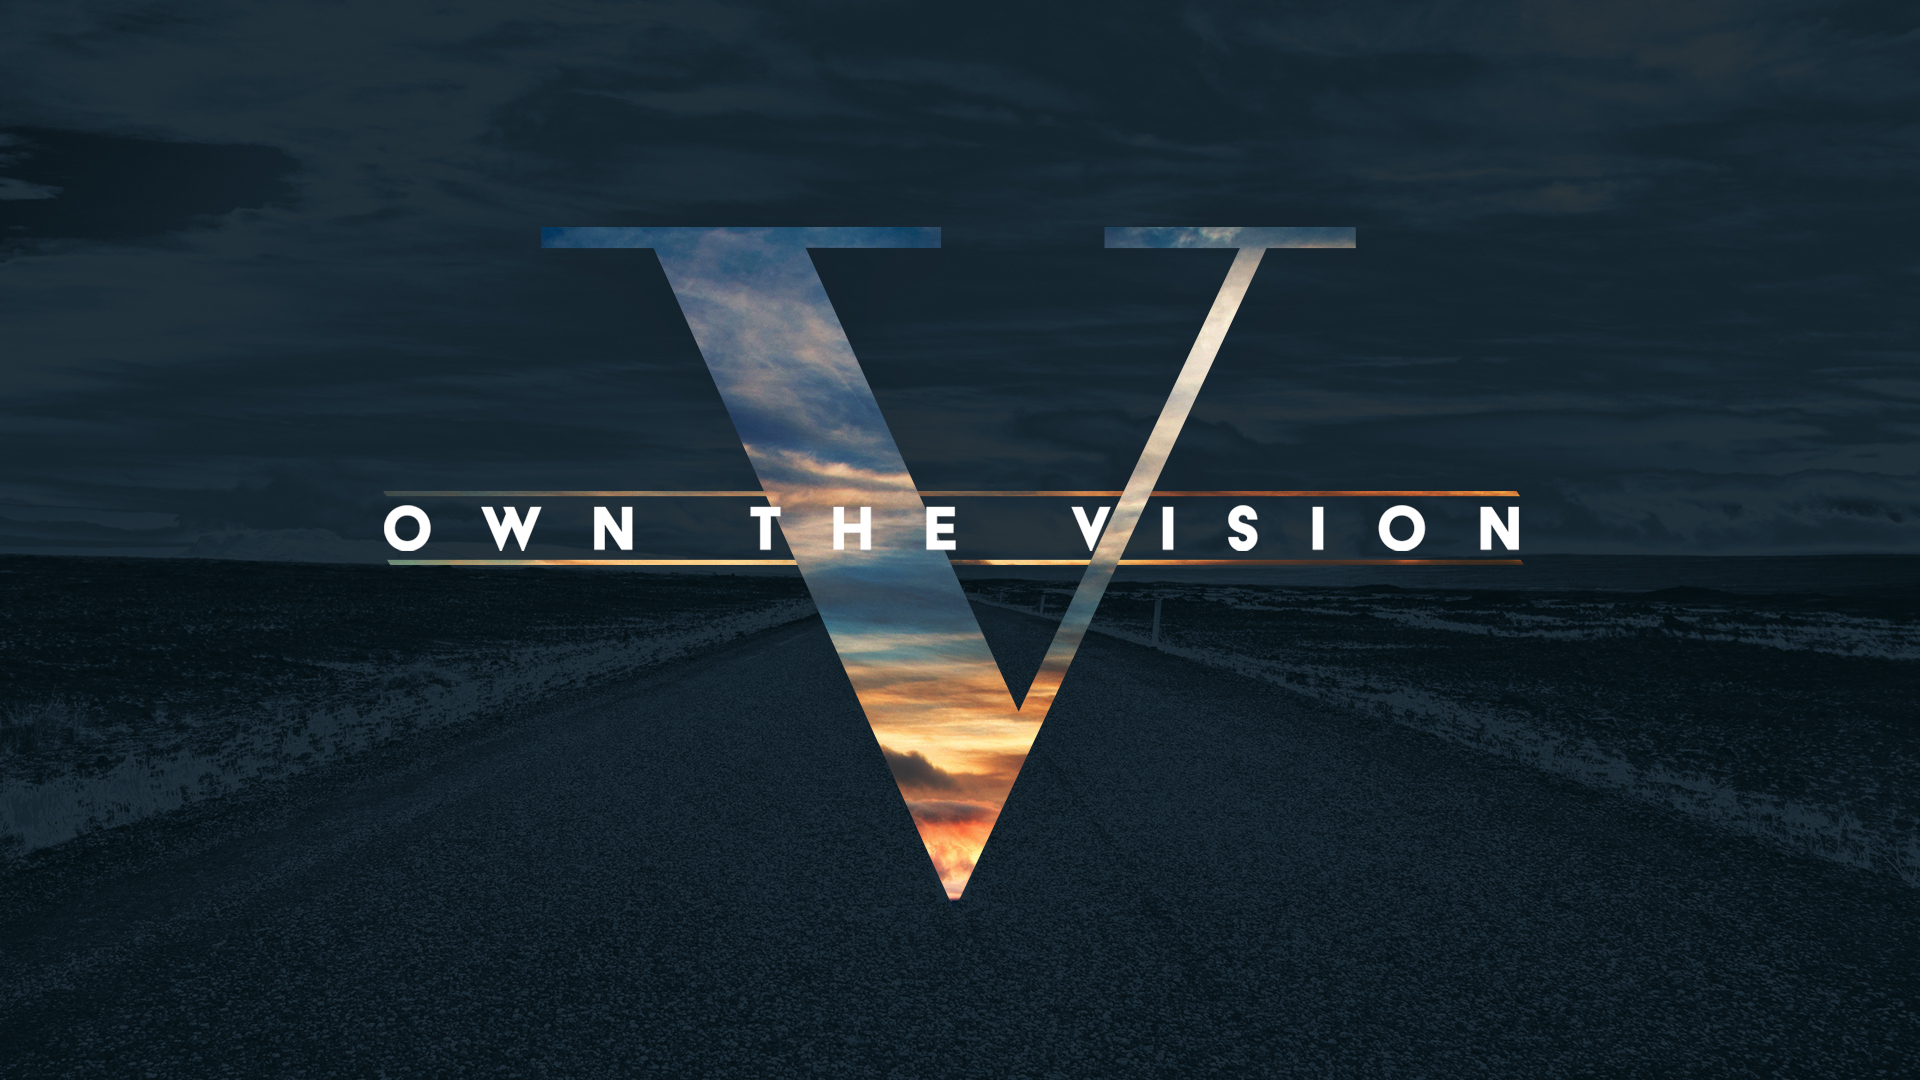 Own-the-vision_title slide.jpg